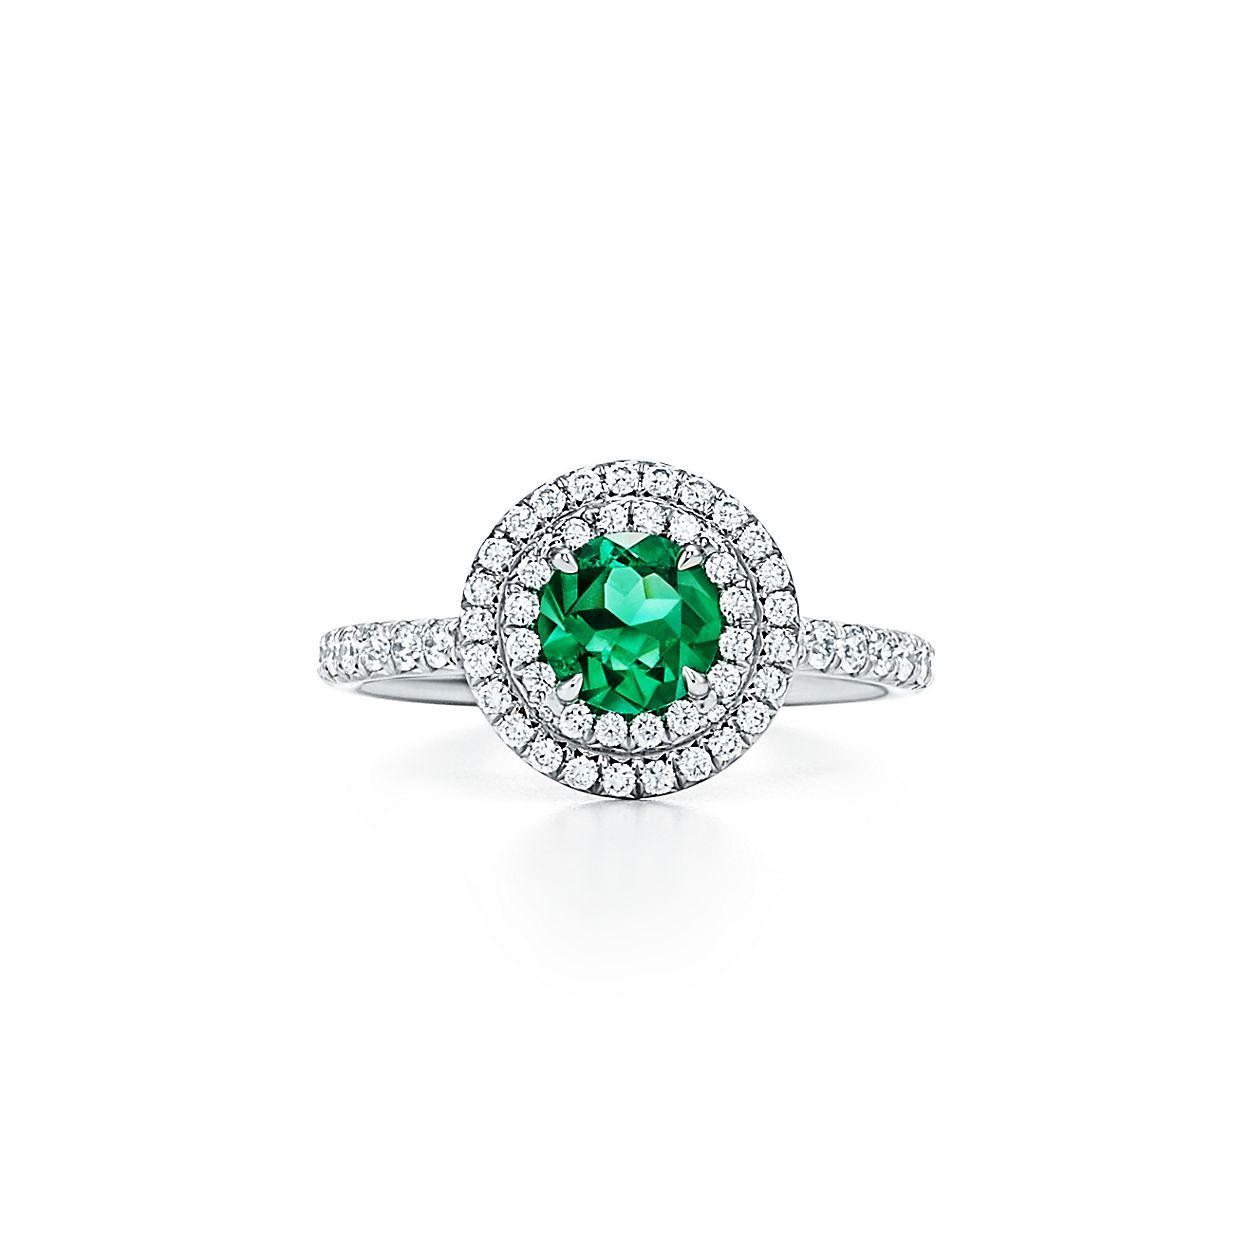 Tiffany Soleste Ring In Platinum With Diamonds And An Emerald Mobile Legend Diamond 36 Co